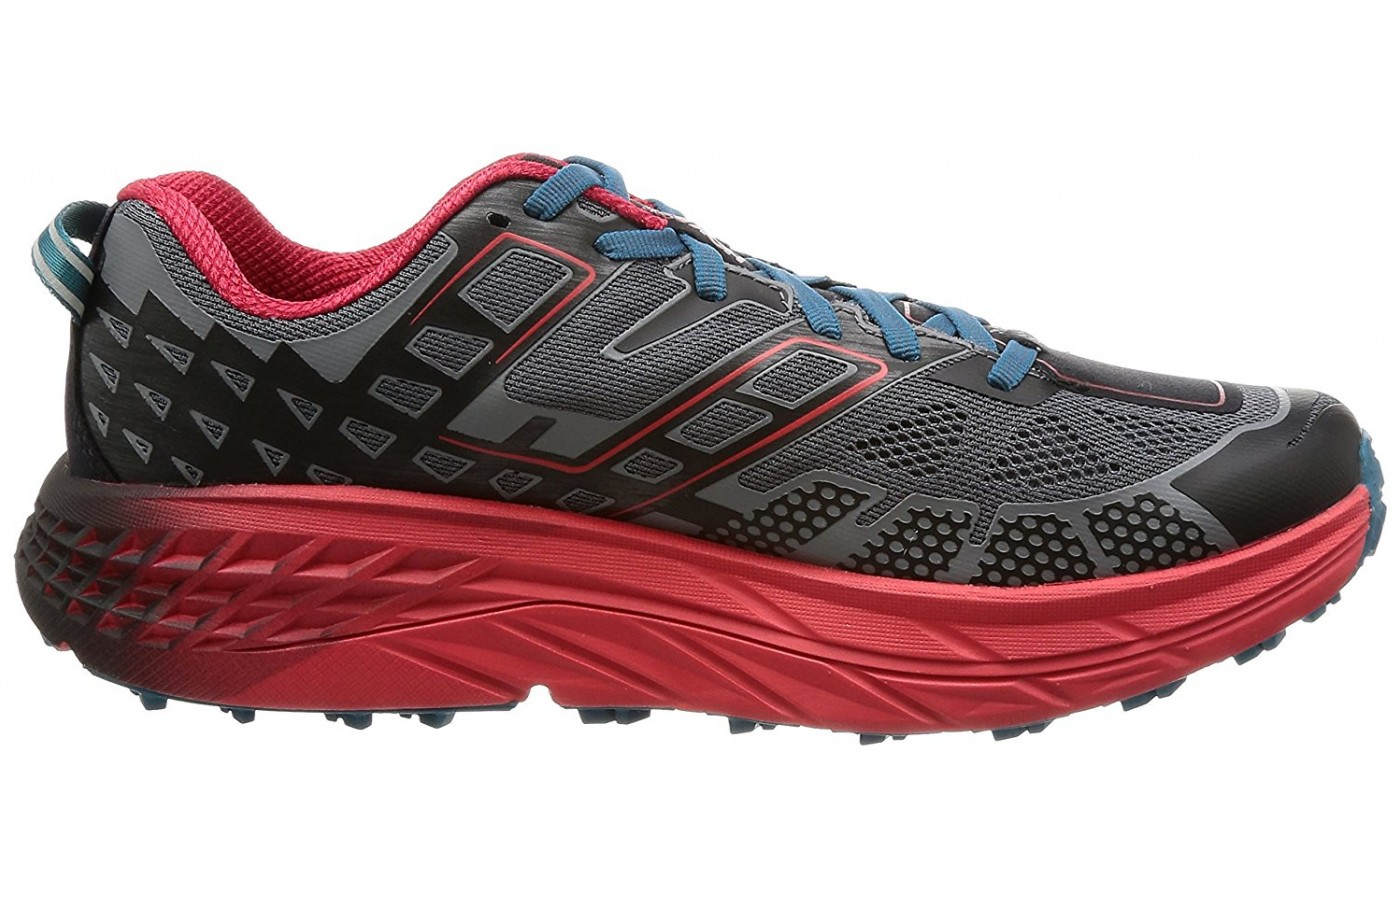 Hoka One One Speedgoat 2 side